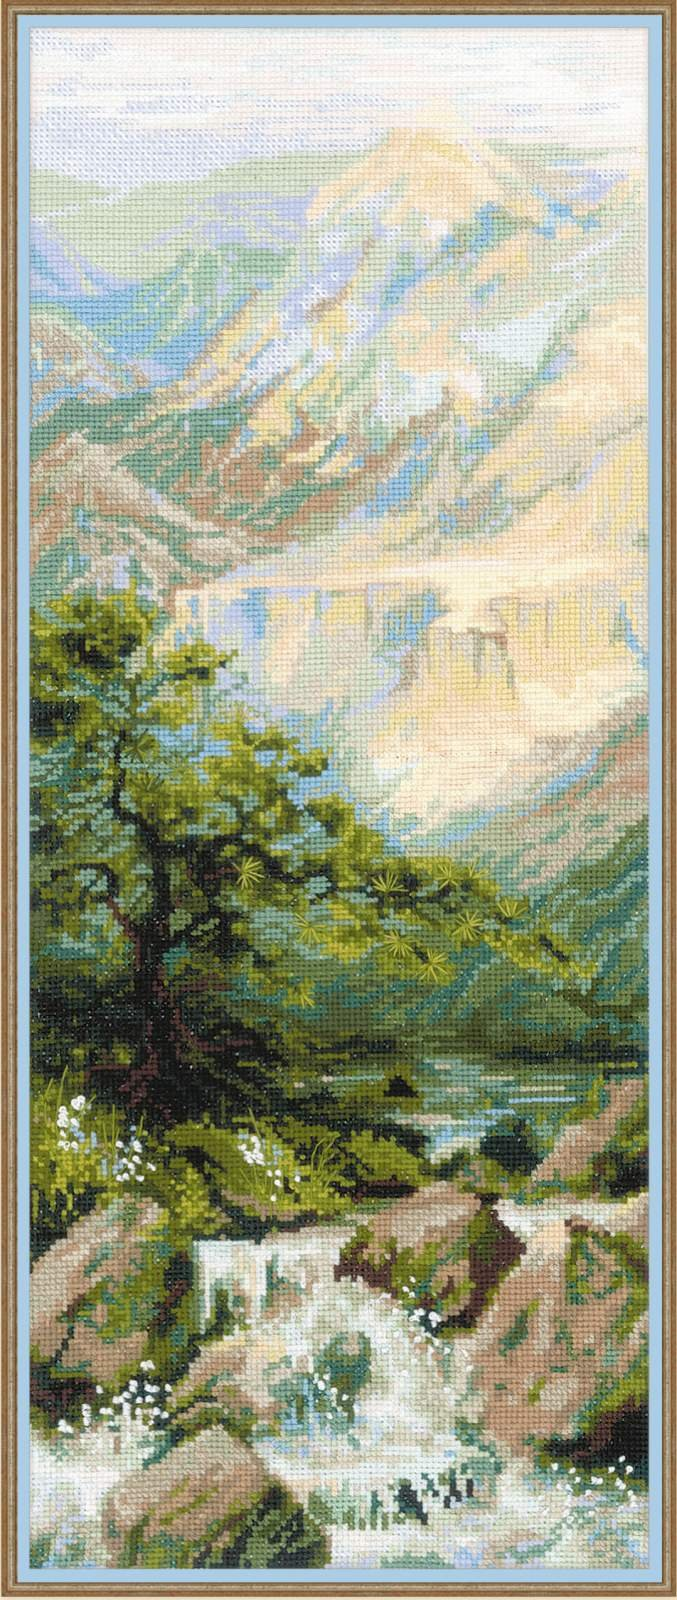 RIOLIS 1543 14 Count Mountain River Ii Counted Cross Stitch Kit, 8'' by 19.75'', Multicolor by RIOLIS